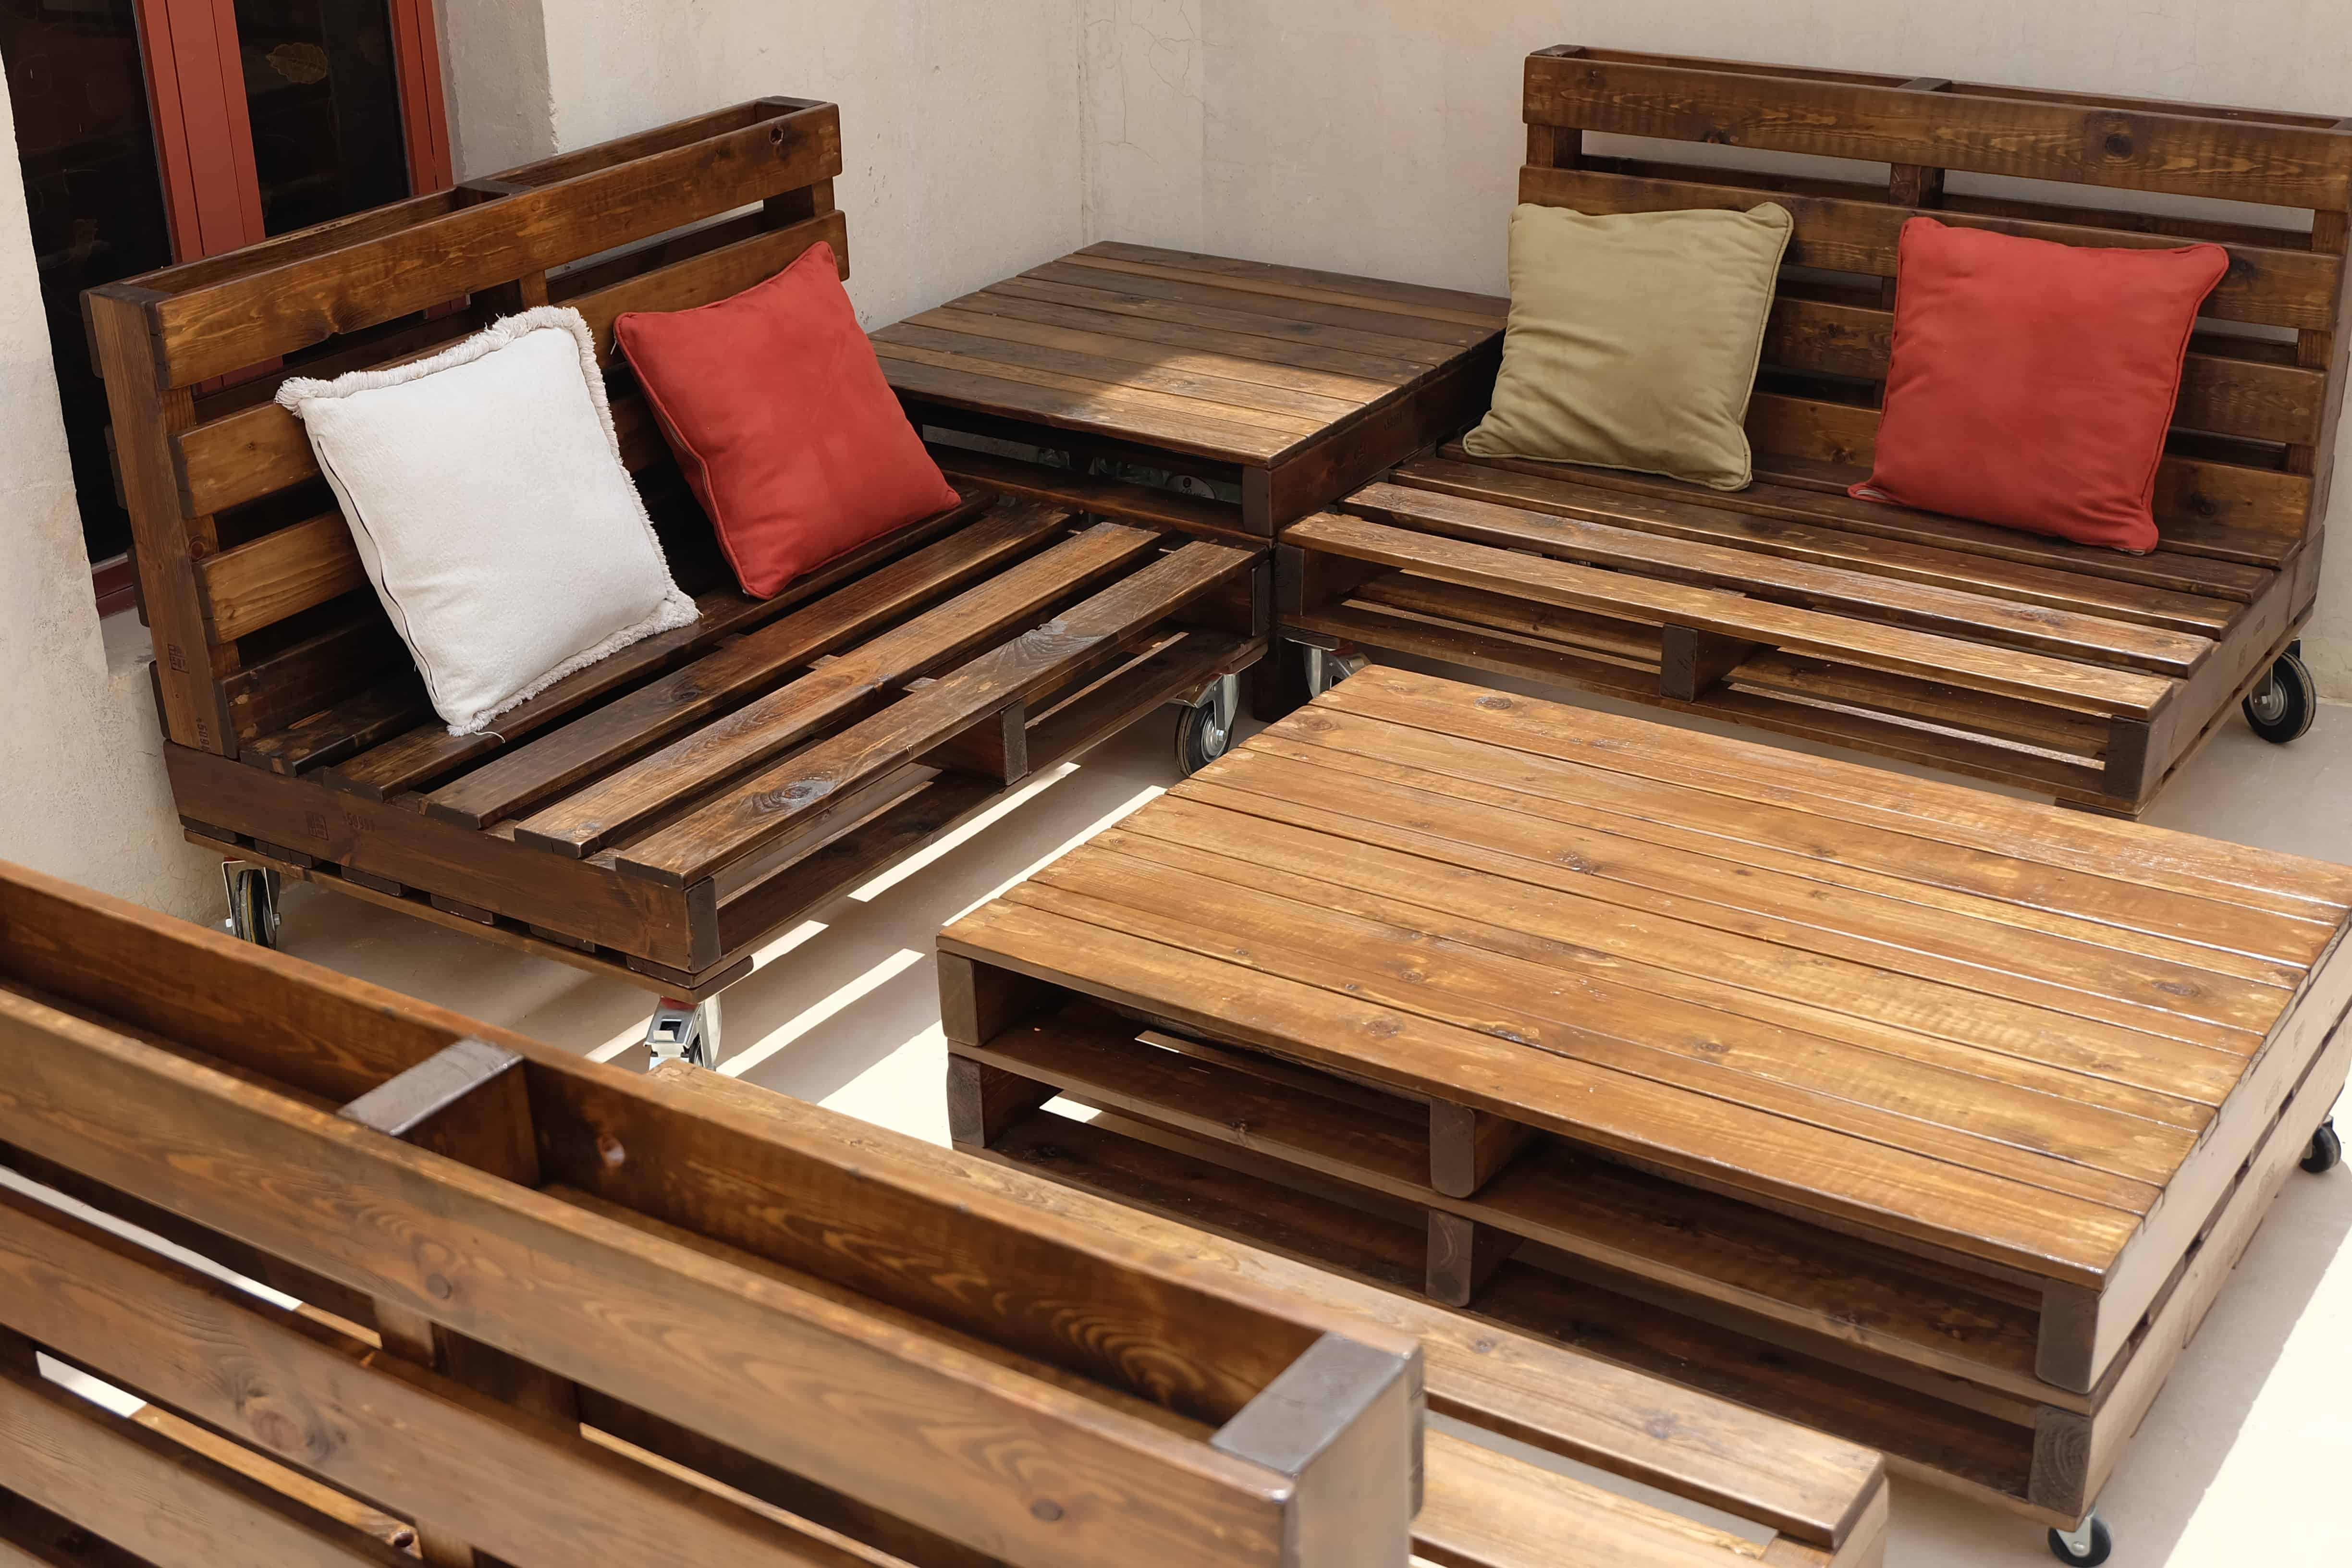 Mobile Pallet Lounge Set Creates Beautiful Outdoor Living ... on Pallet Room Ideas  id=69564